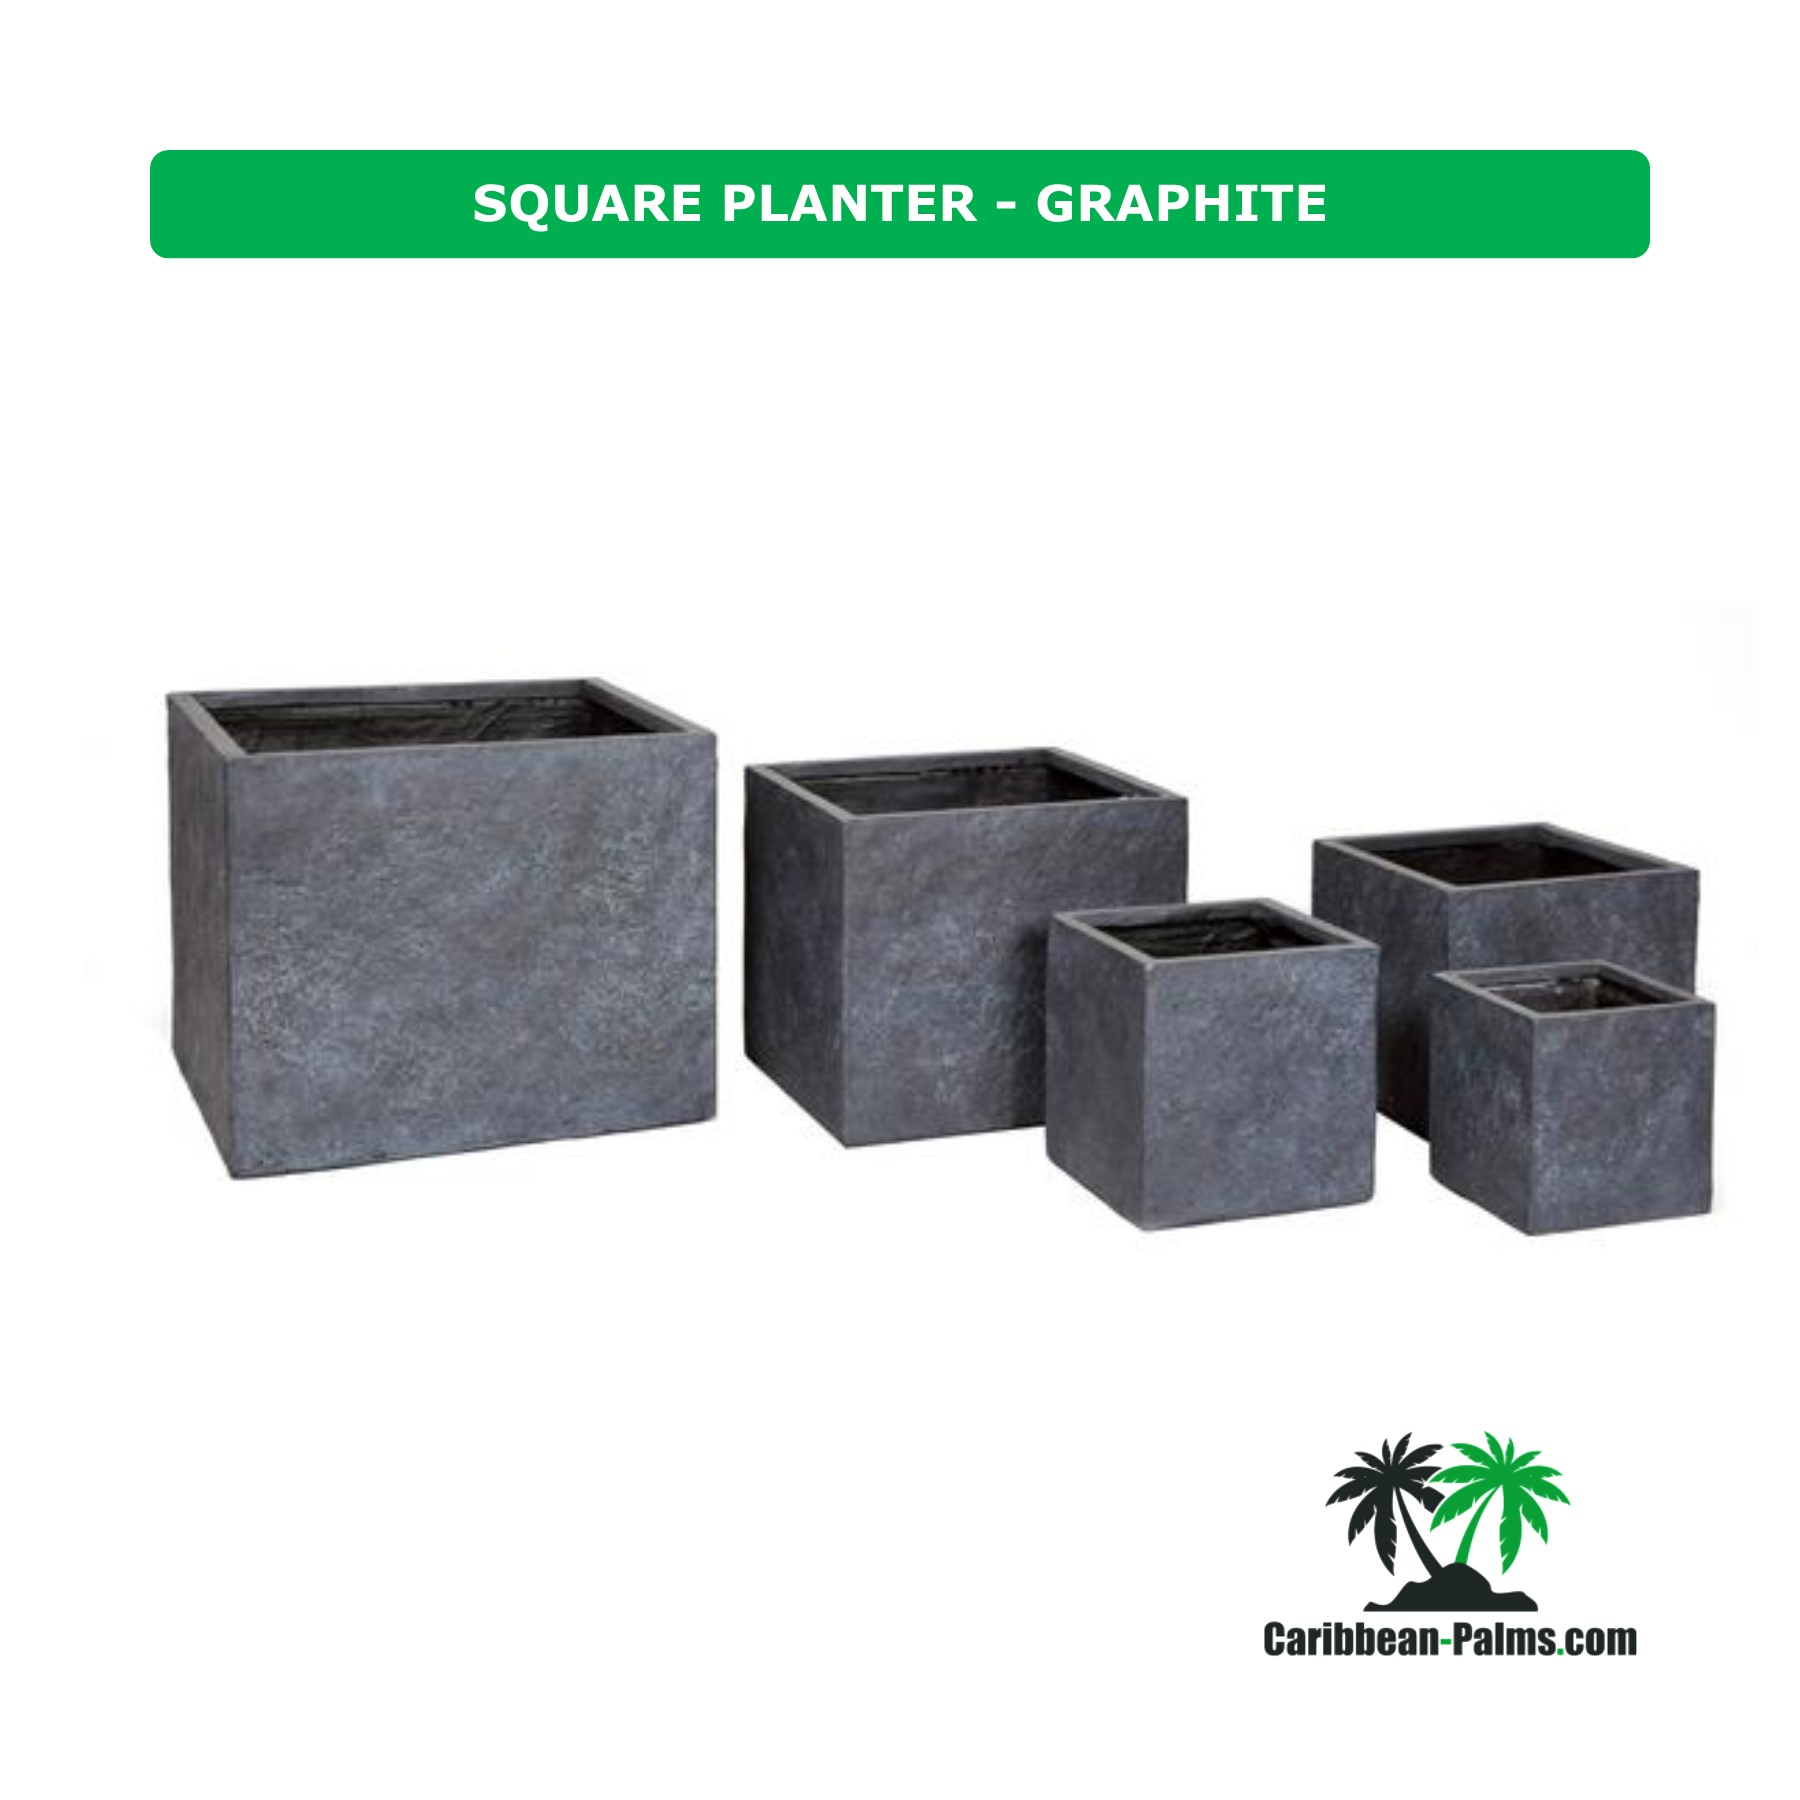 SQUARE PLANTER GRAPHITE